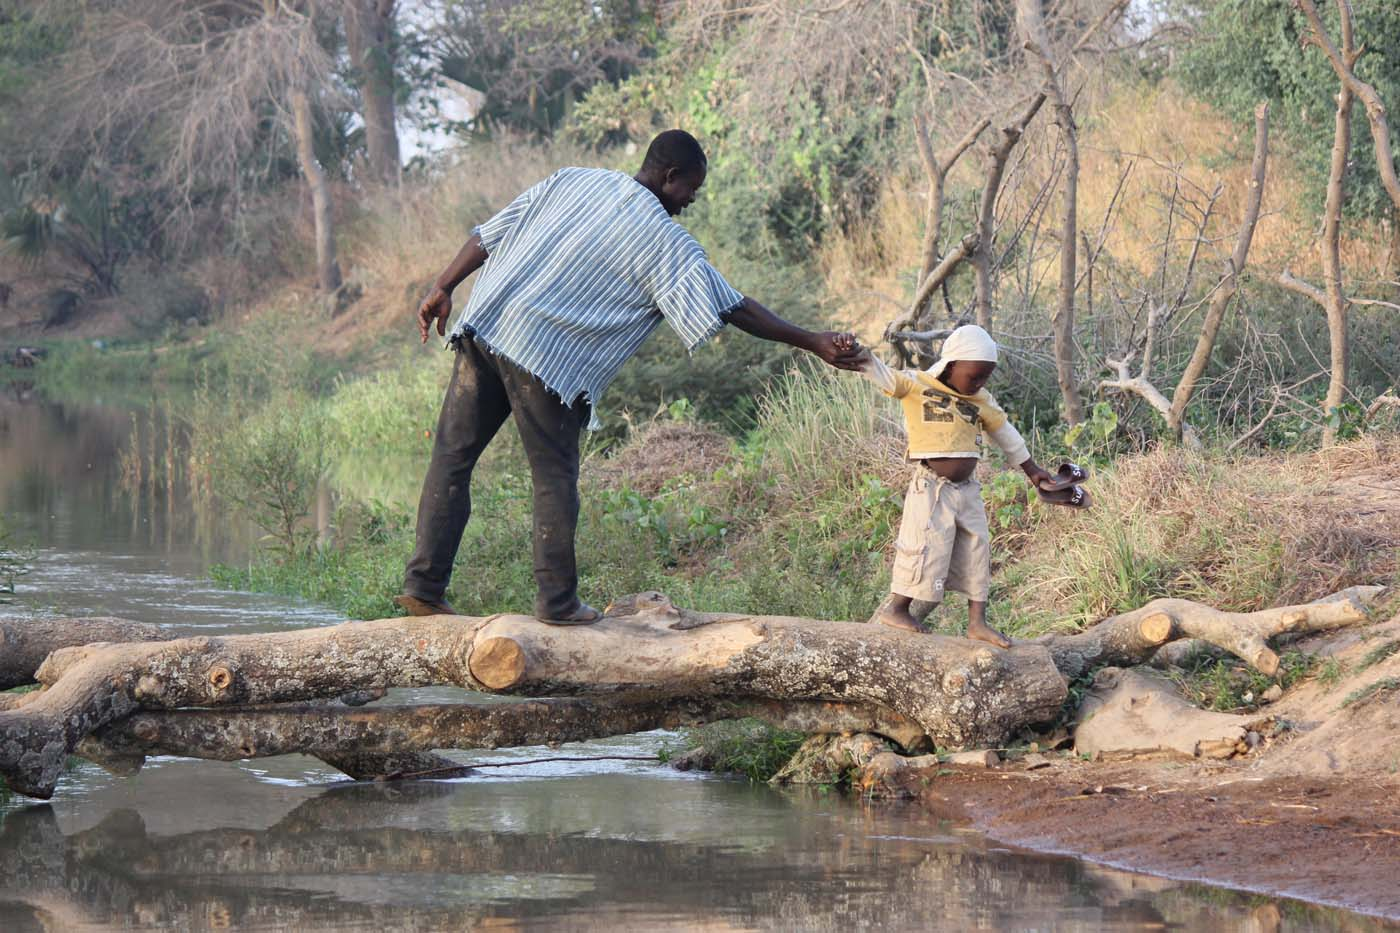 A father holding his child's hand as they cross the water